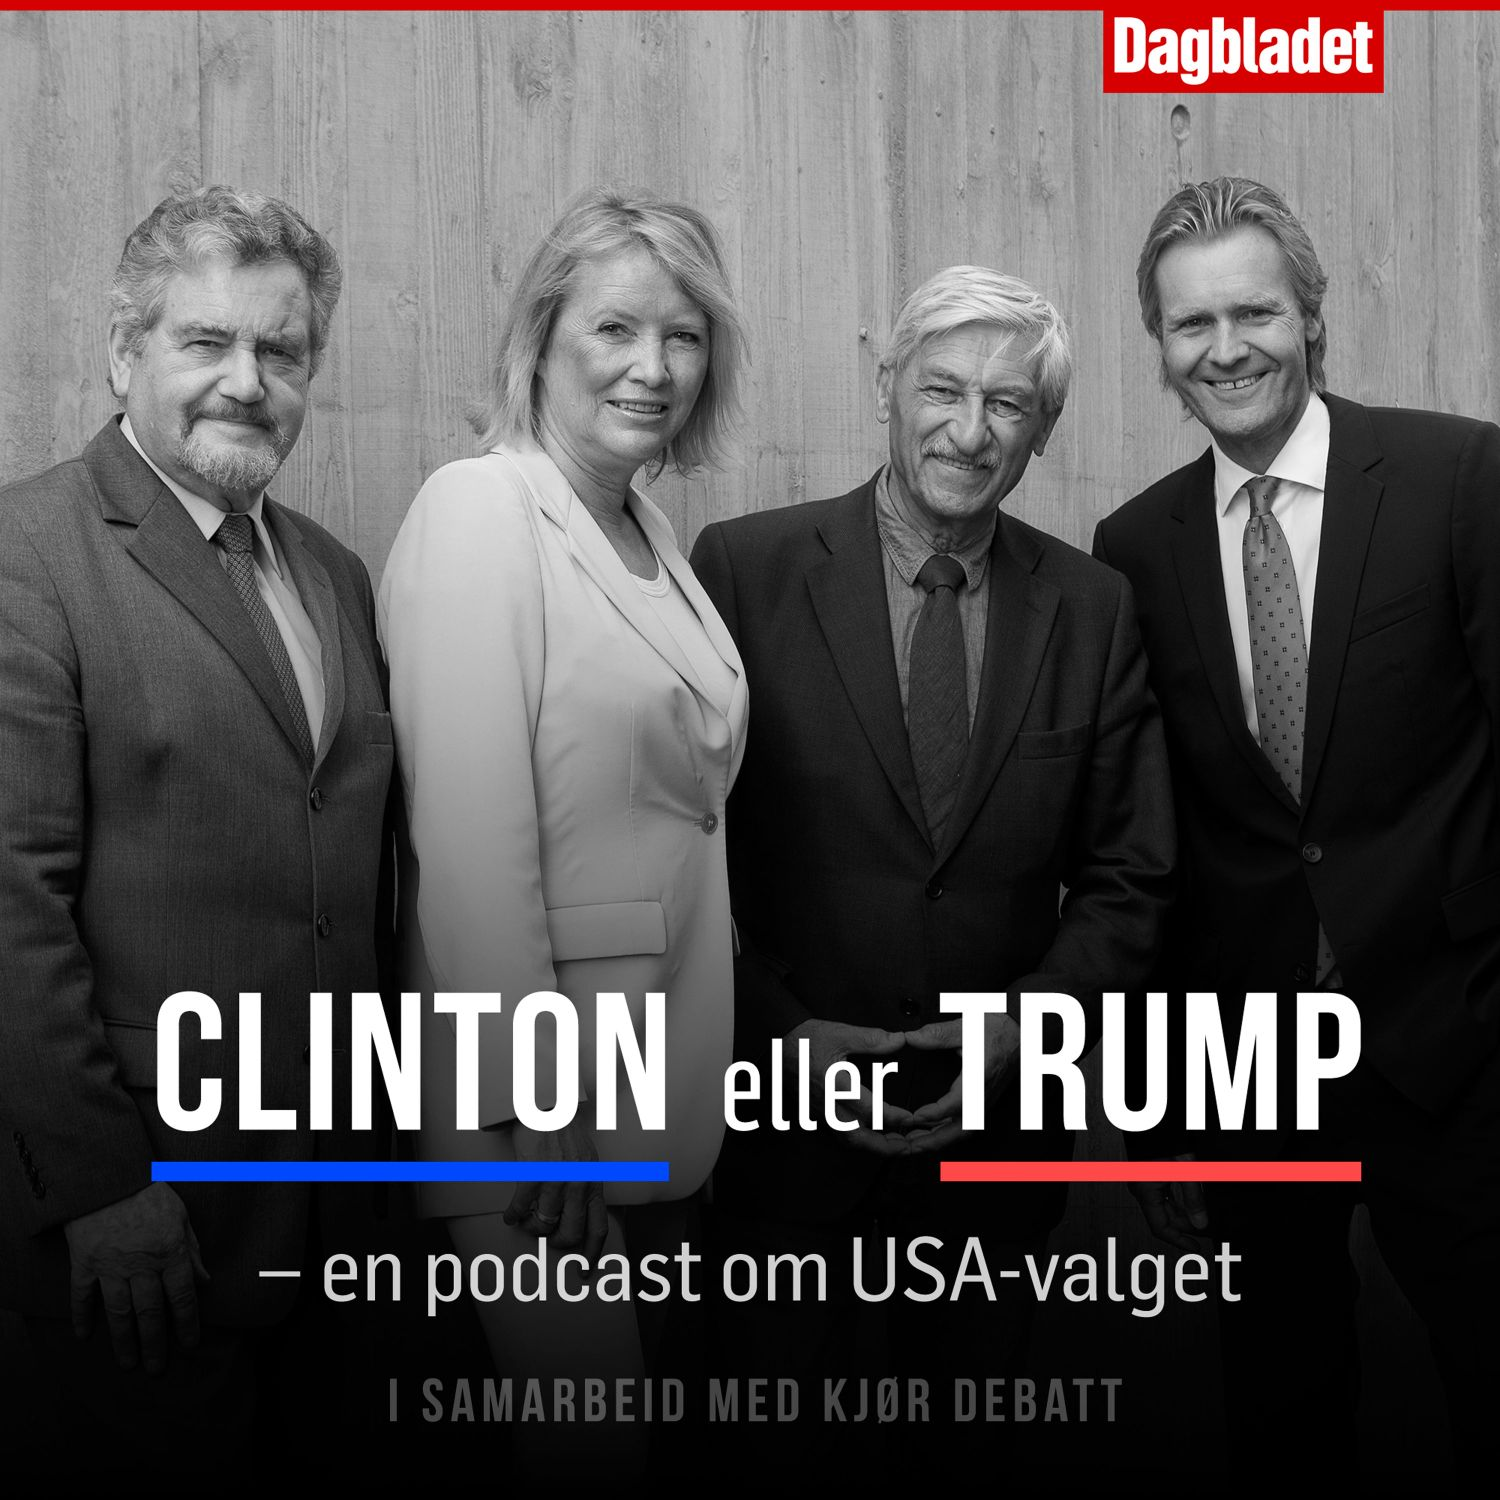 Trump eller Clinton? - en podcast om USA-valget